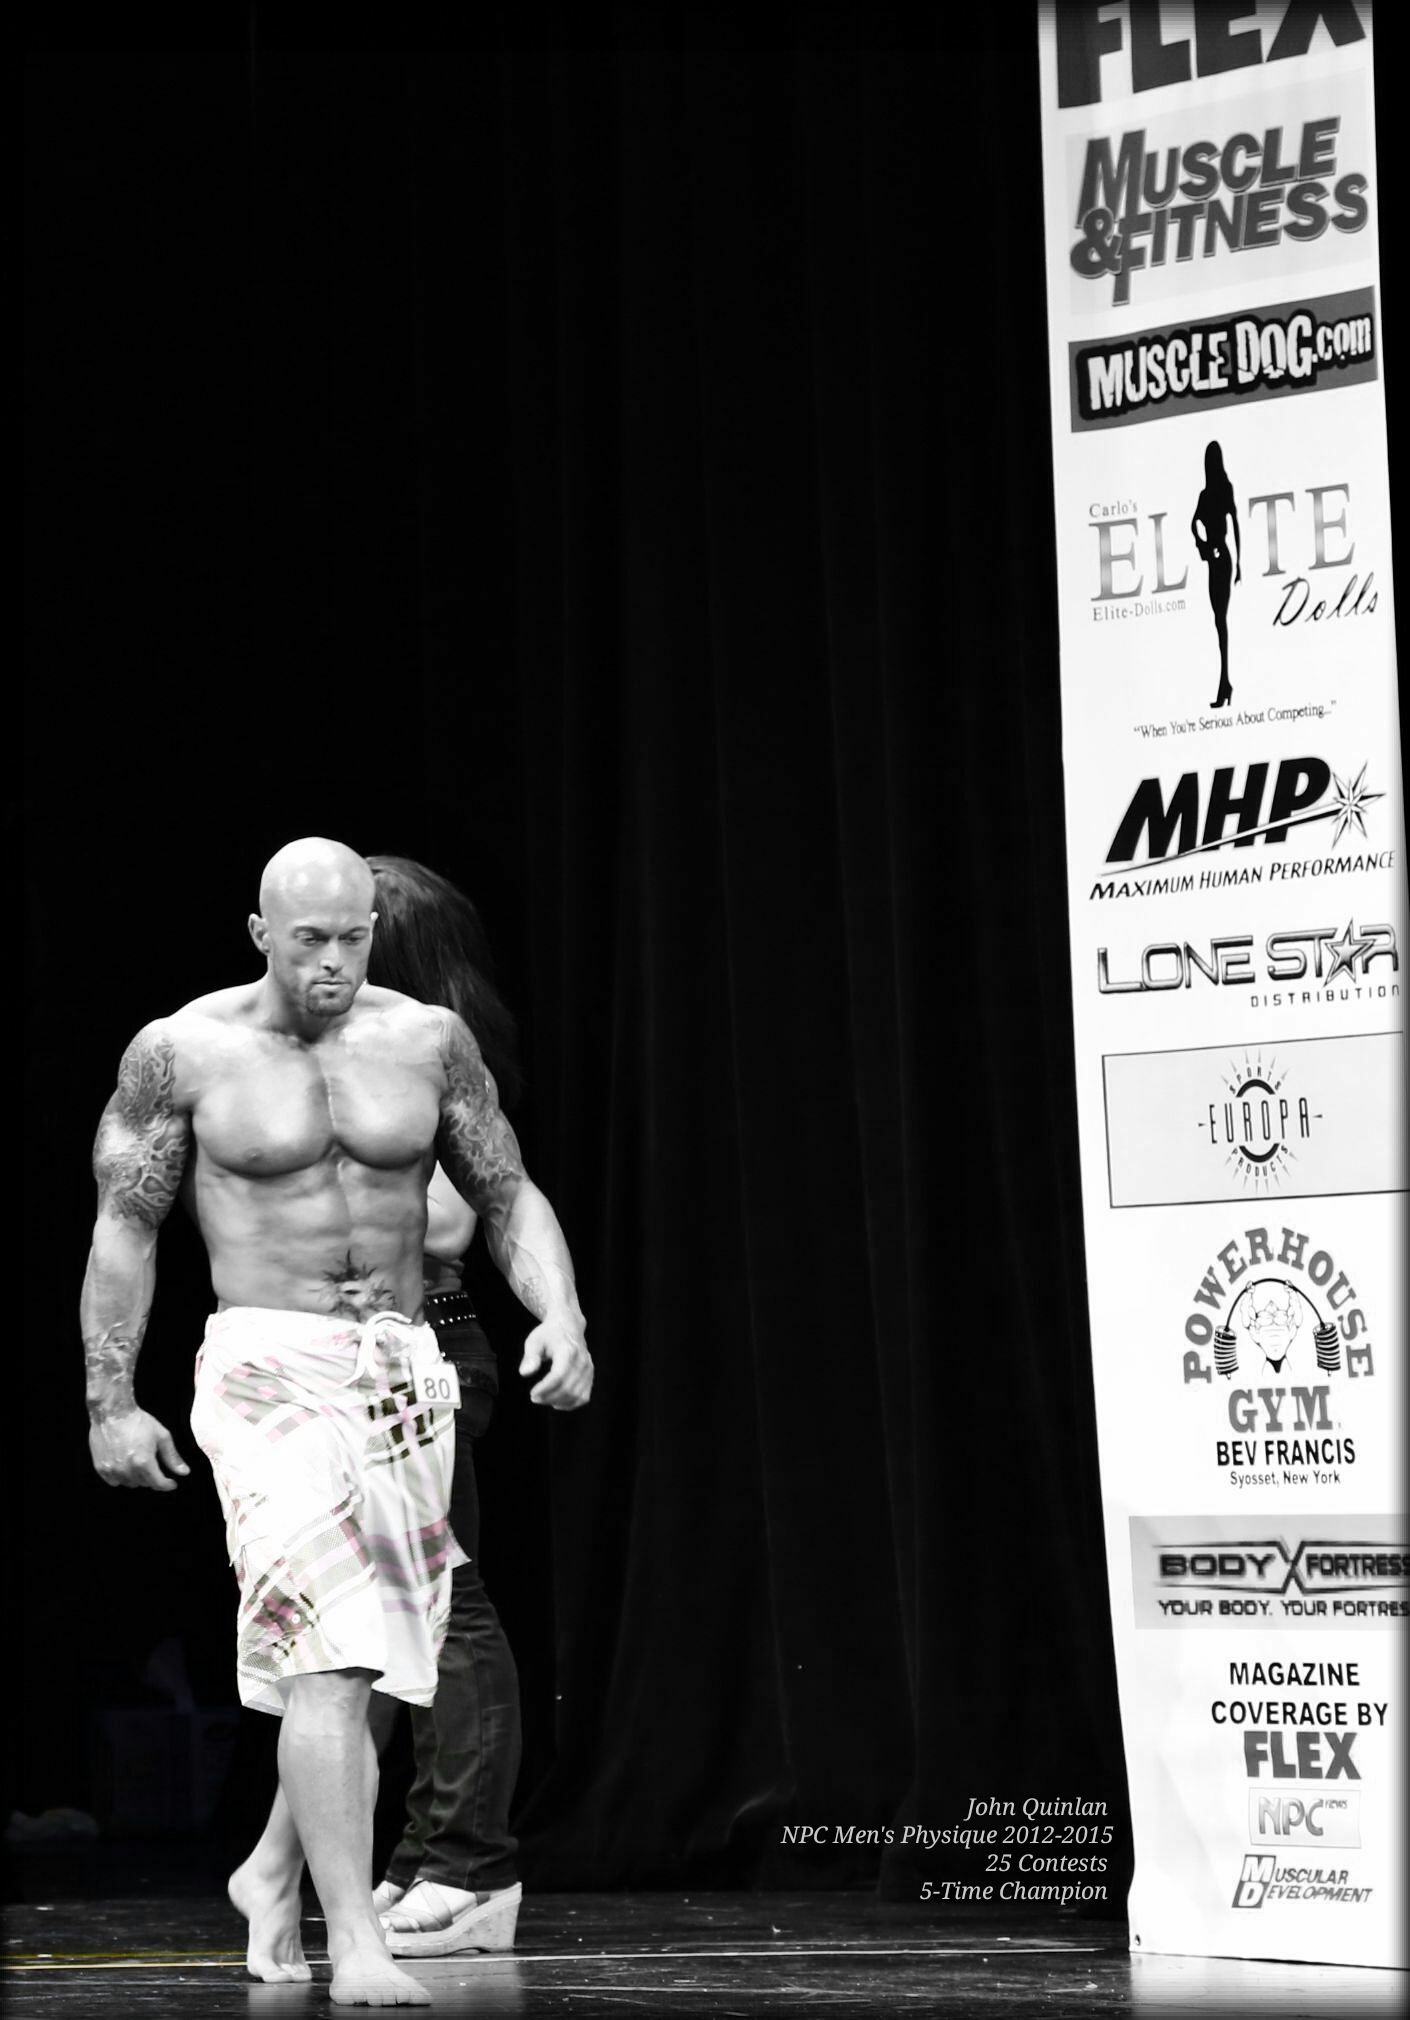 NPC Physique Model & Actor John Joseph Quinlan 5-Time Champion #JohnQuinlan